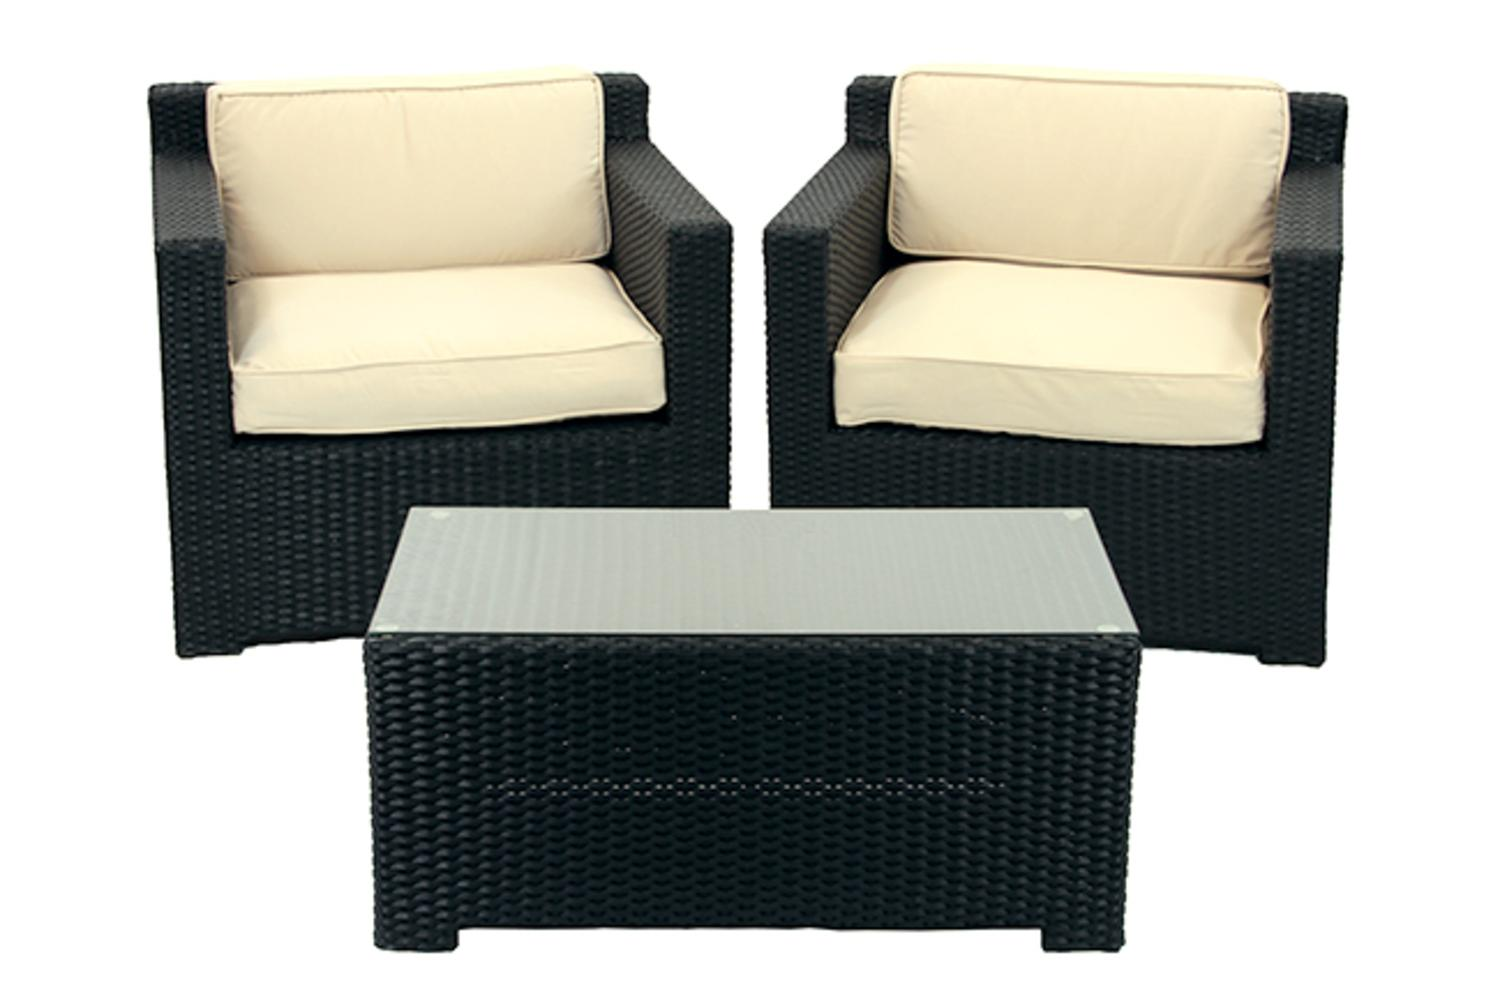 3-Piece Black Resin Wicker Outdoor Patio Furniture Set - Beige Cushions -  Walmart.com - 3-Piece Black Resin Wicker Outdoor Patio Furniture Set - Beige